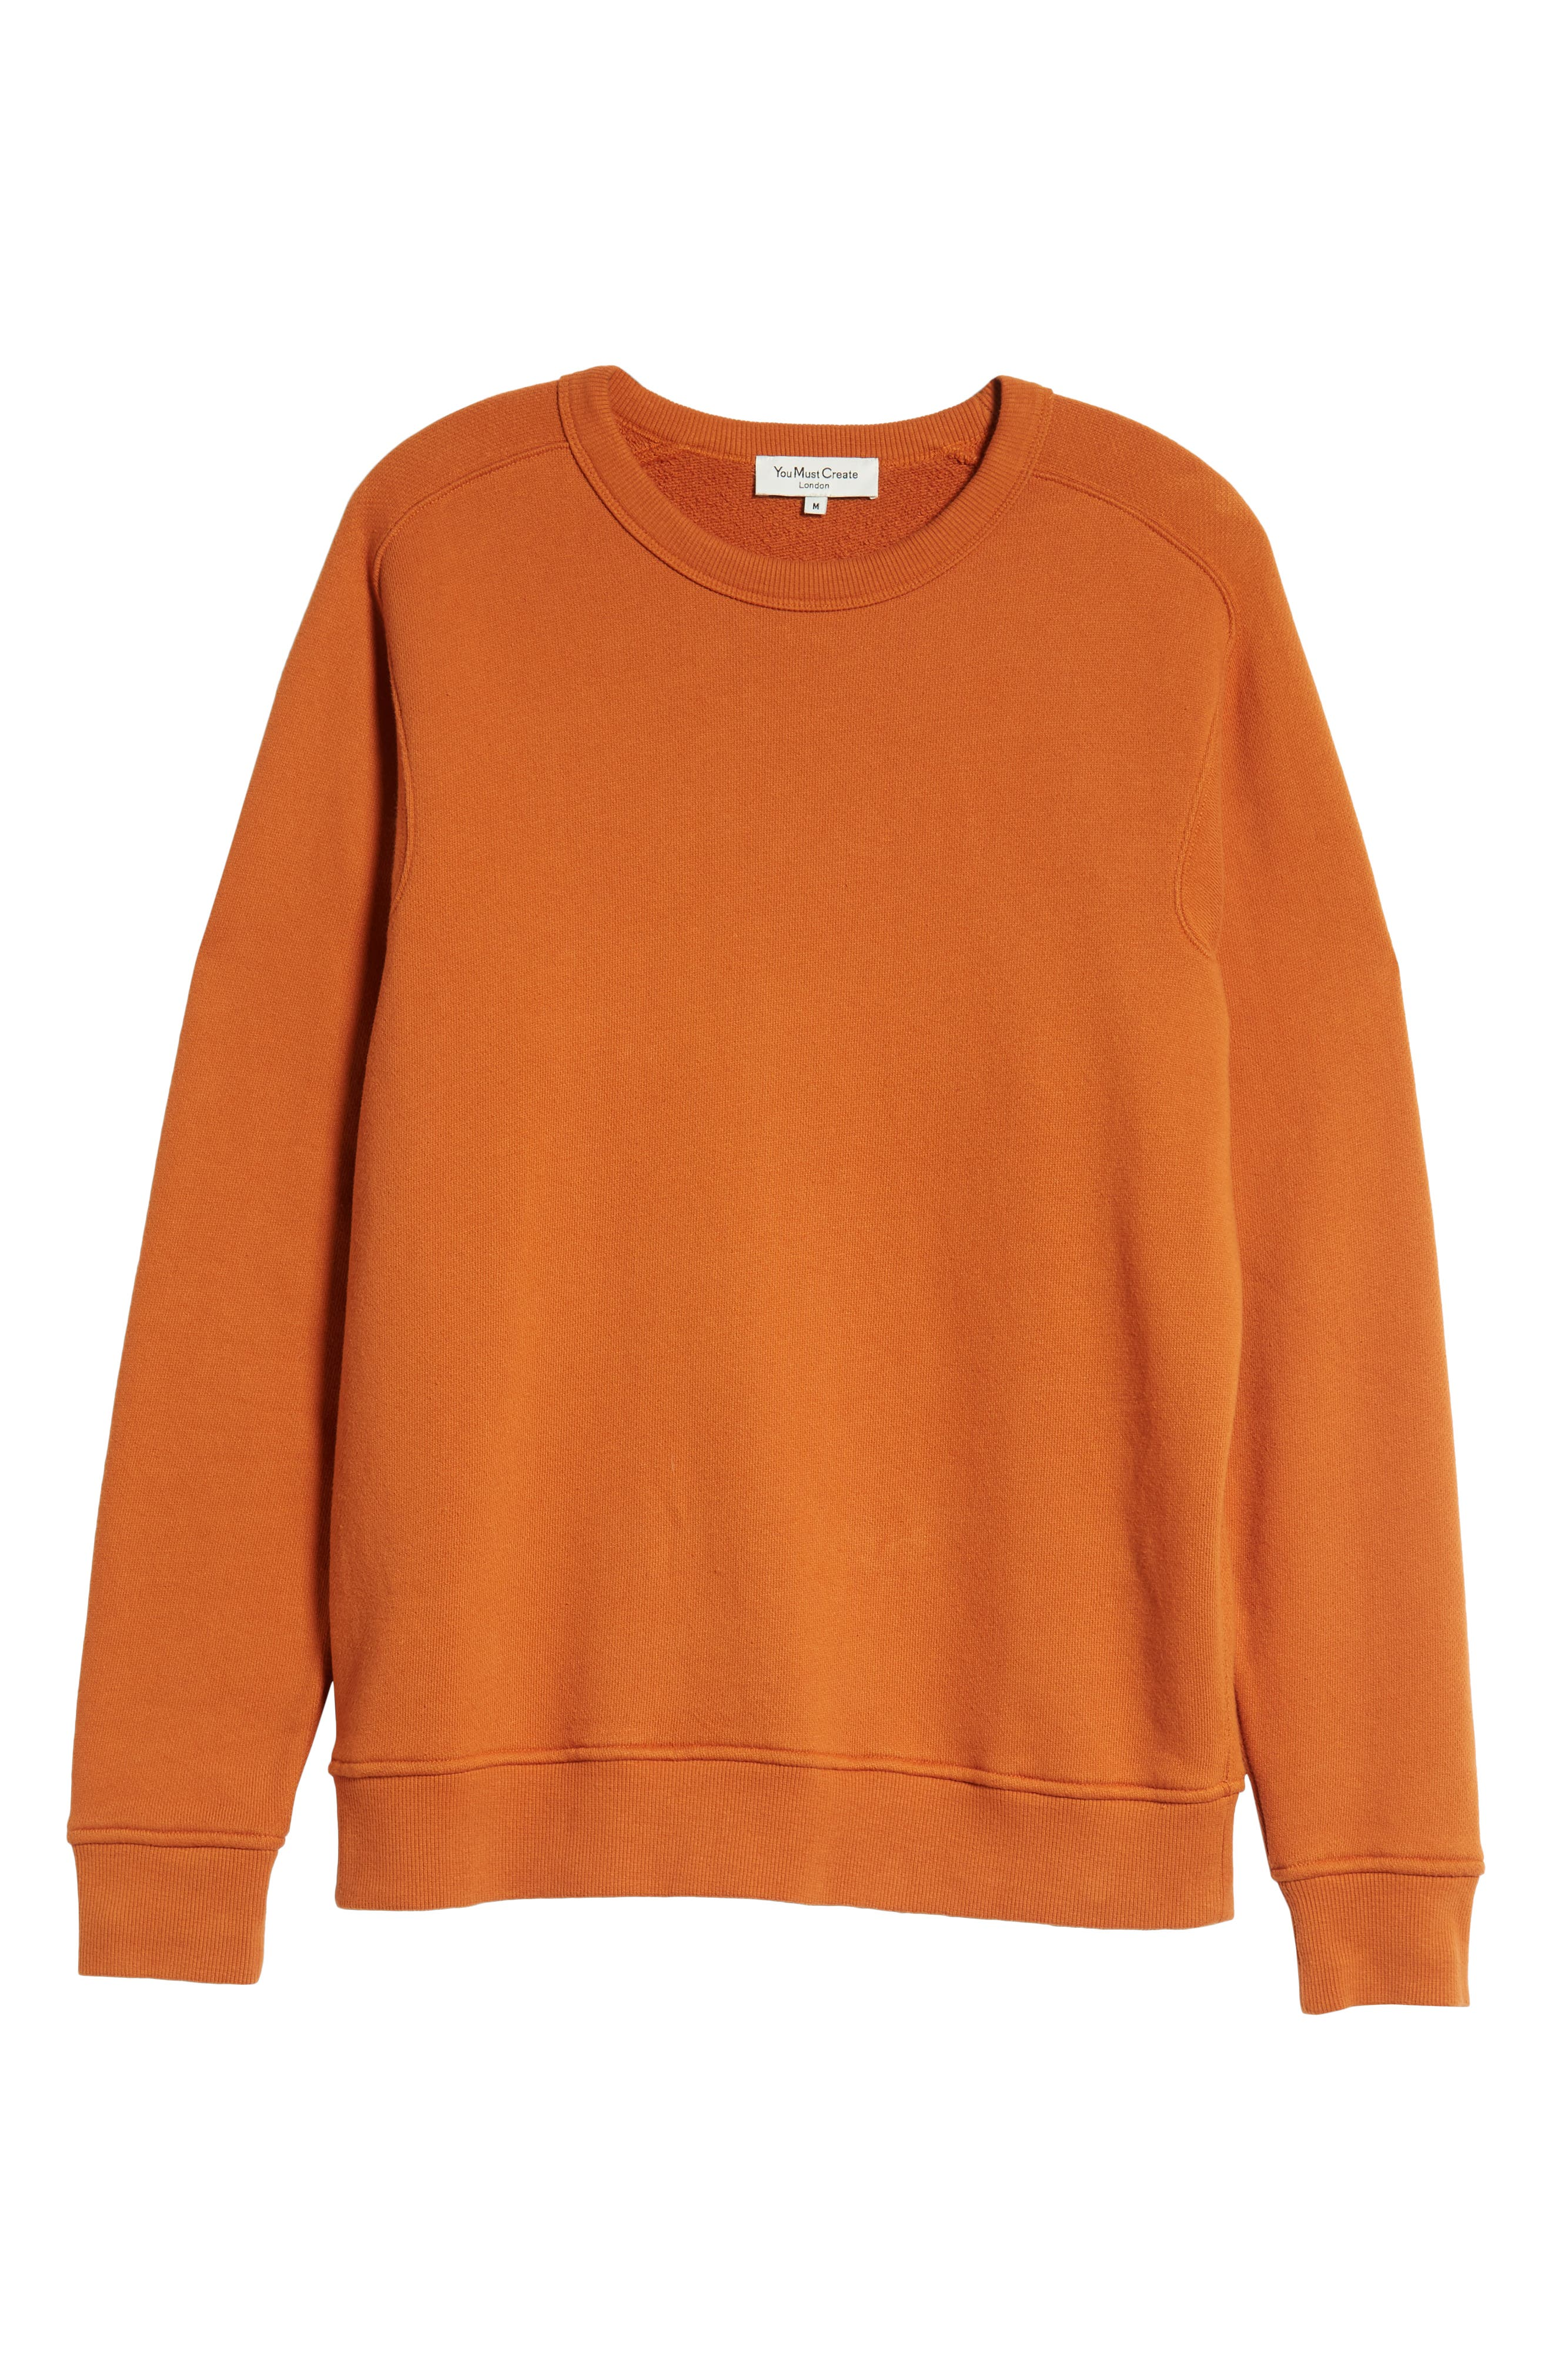 Almost Grown Crewneck Sweatshirt,                             Alternate thumbnail 6, color,                             RUST